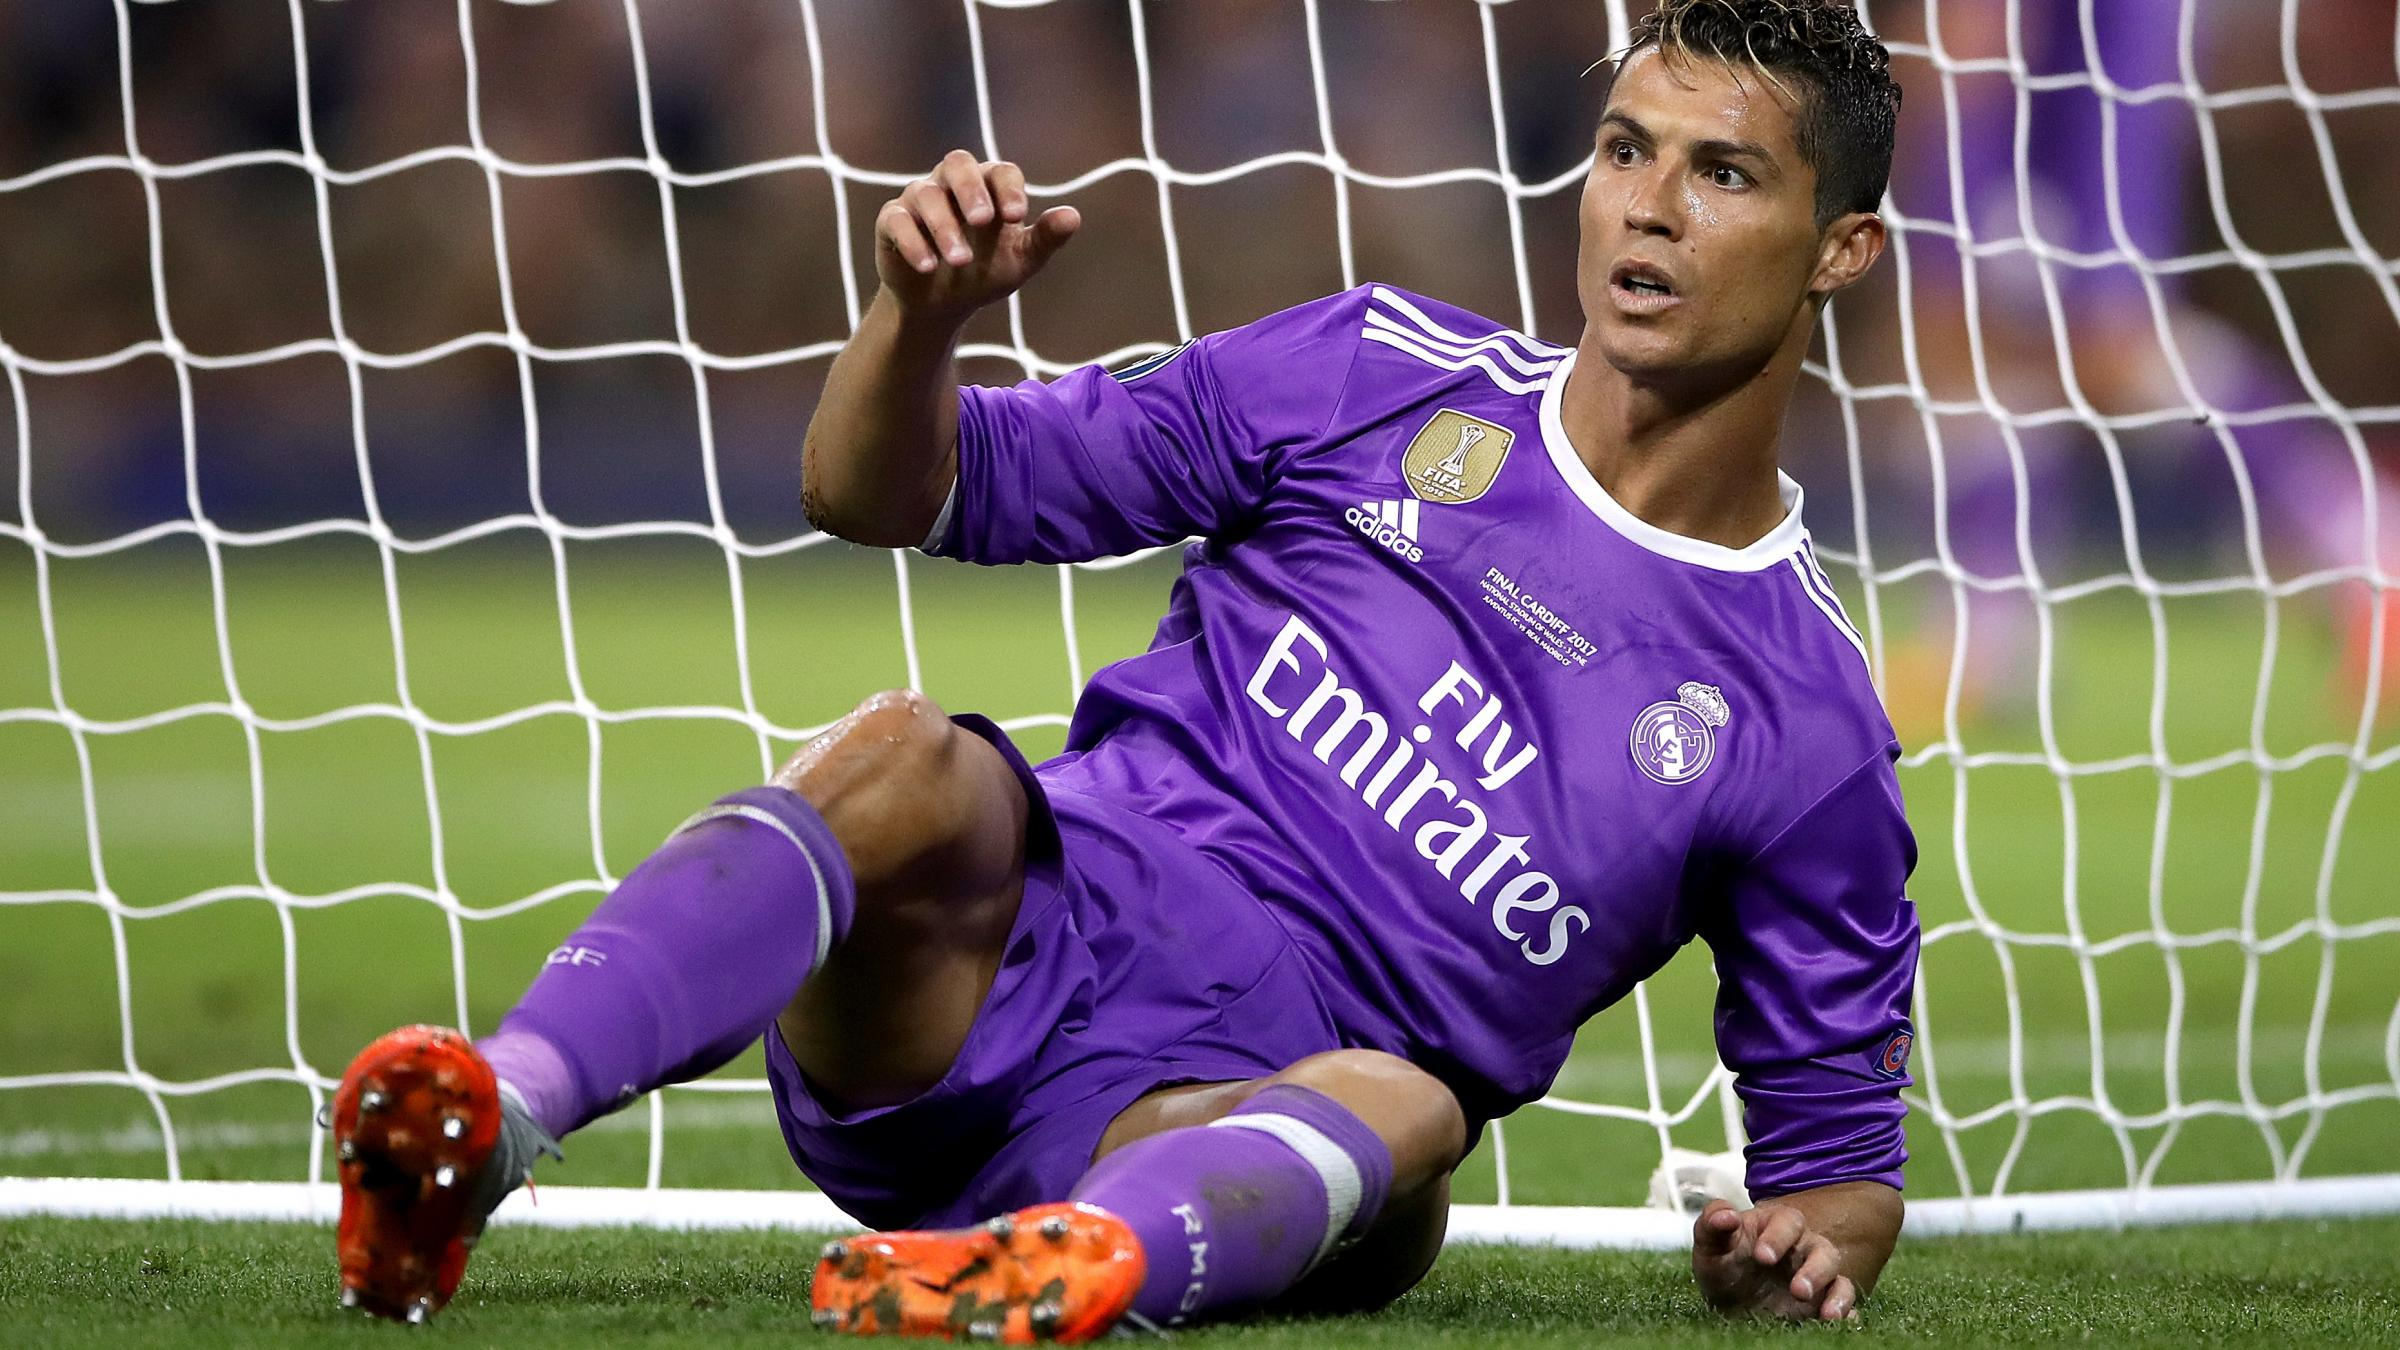 Real Madrid defends Ronaldo from tax fraud accusations